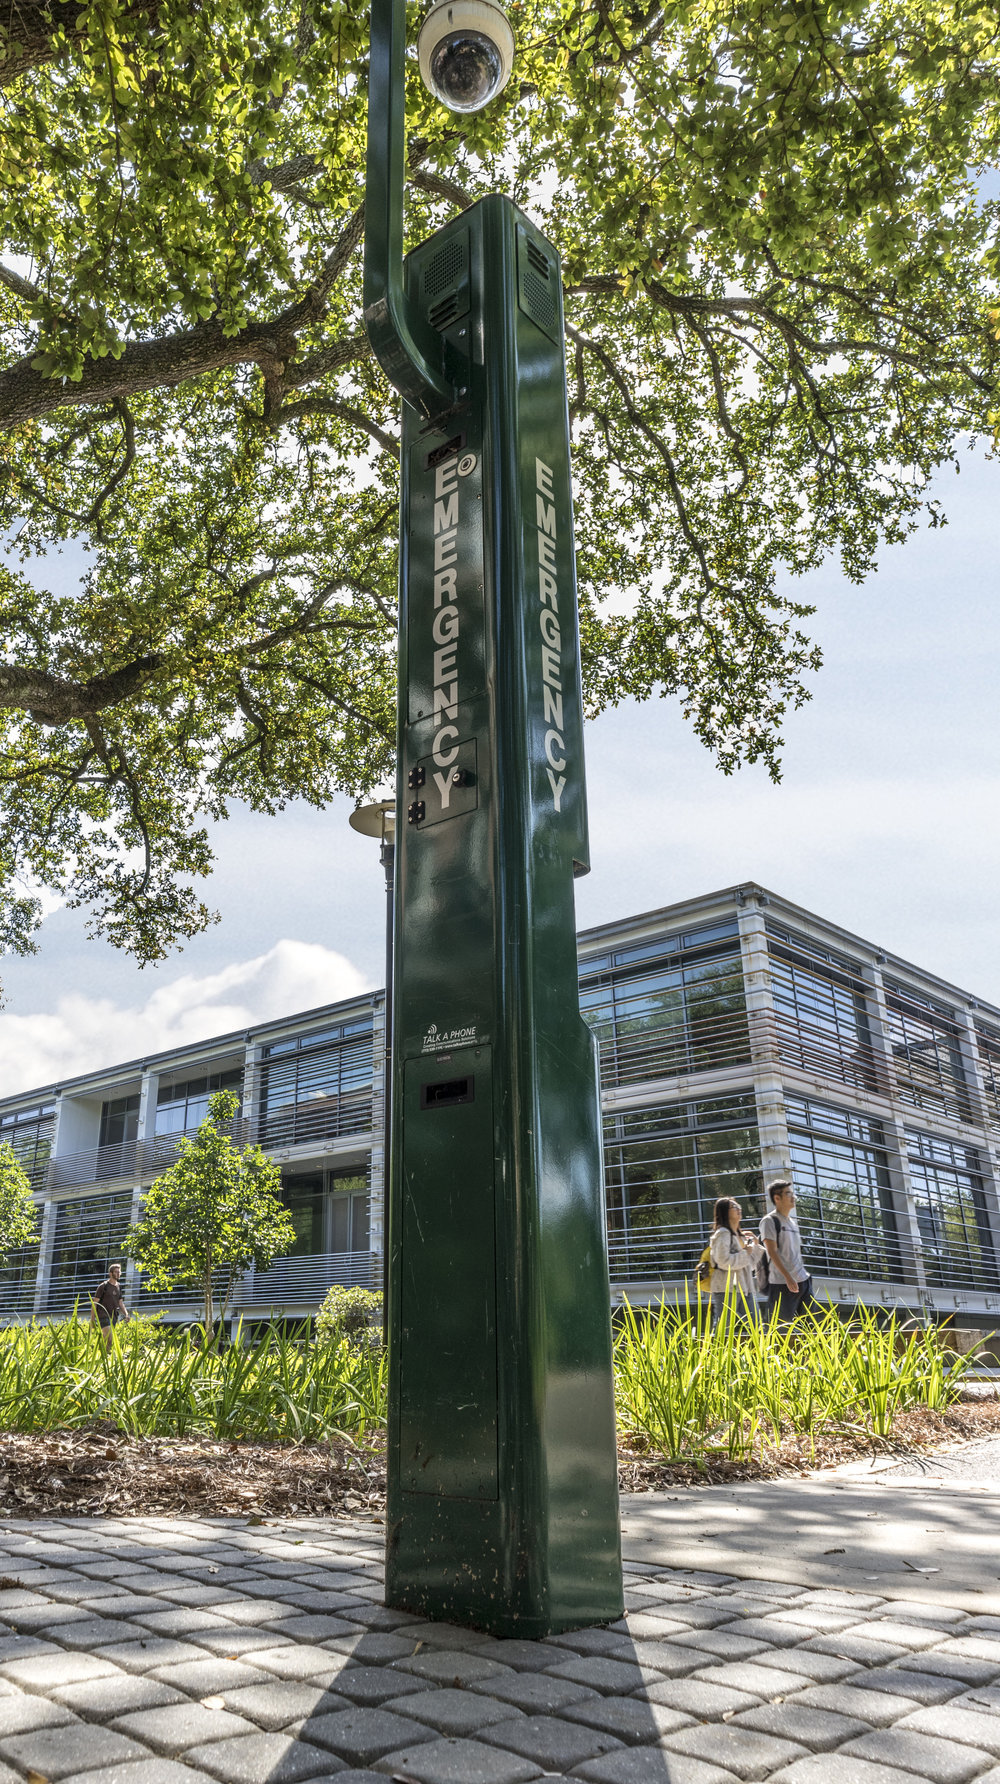 We Secure Campuses - Tulane University and Louisiana State University chose Active Solutions to secure buildings, stadiums, and outdoor spaces.